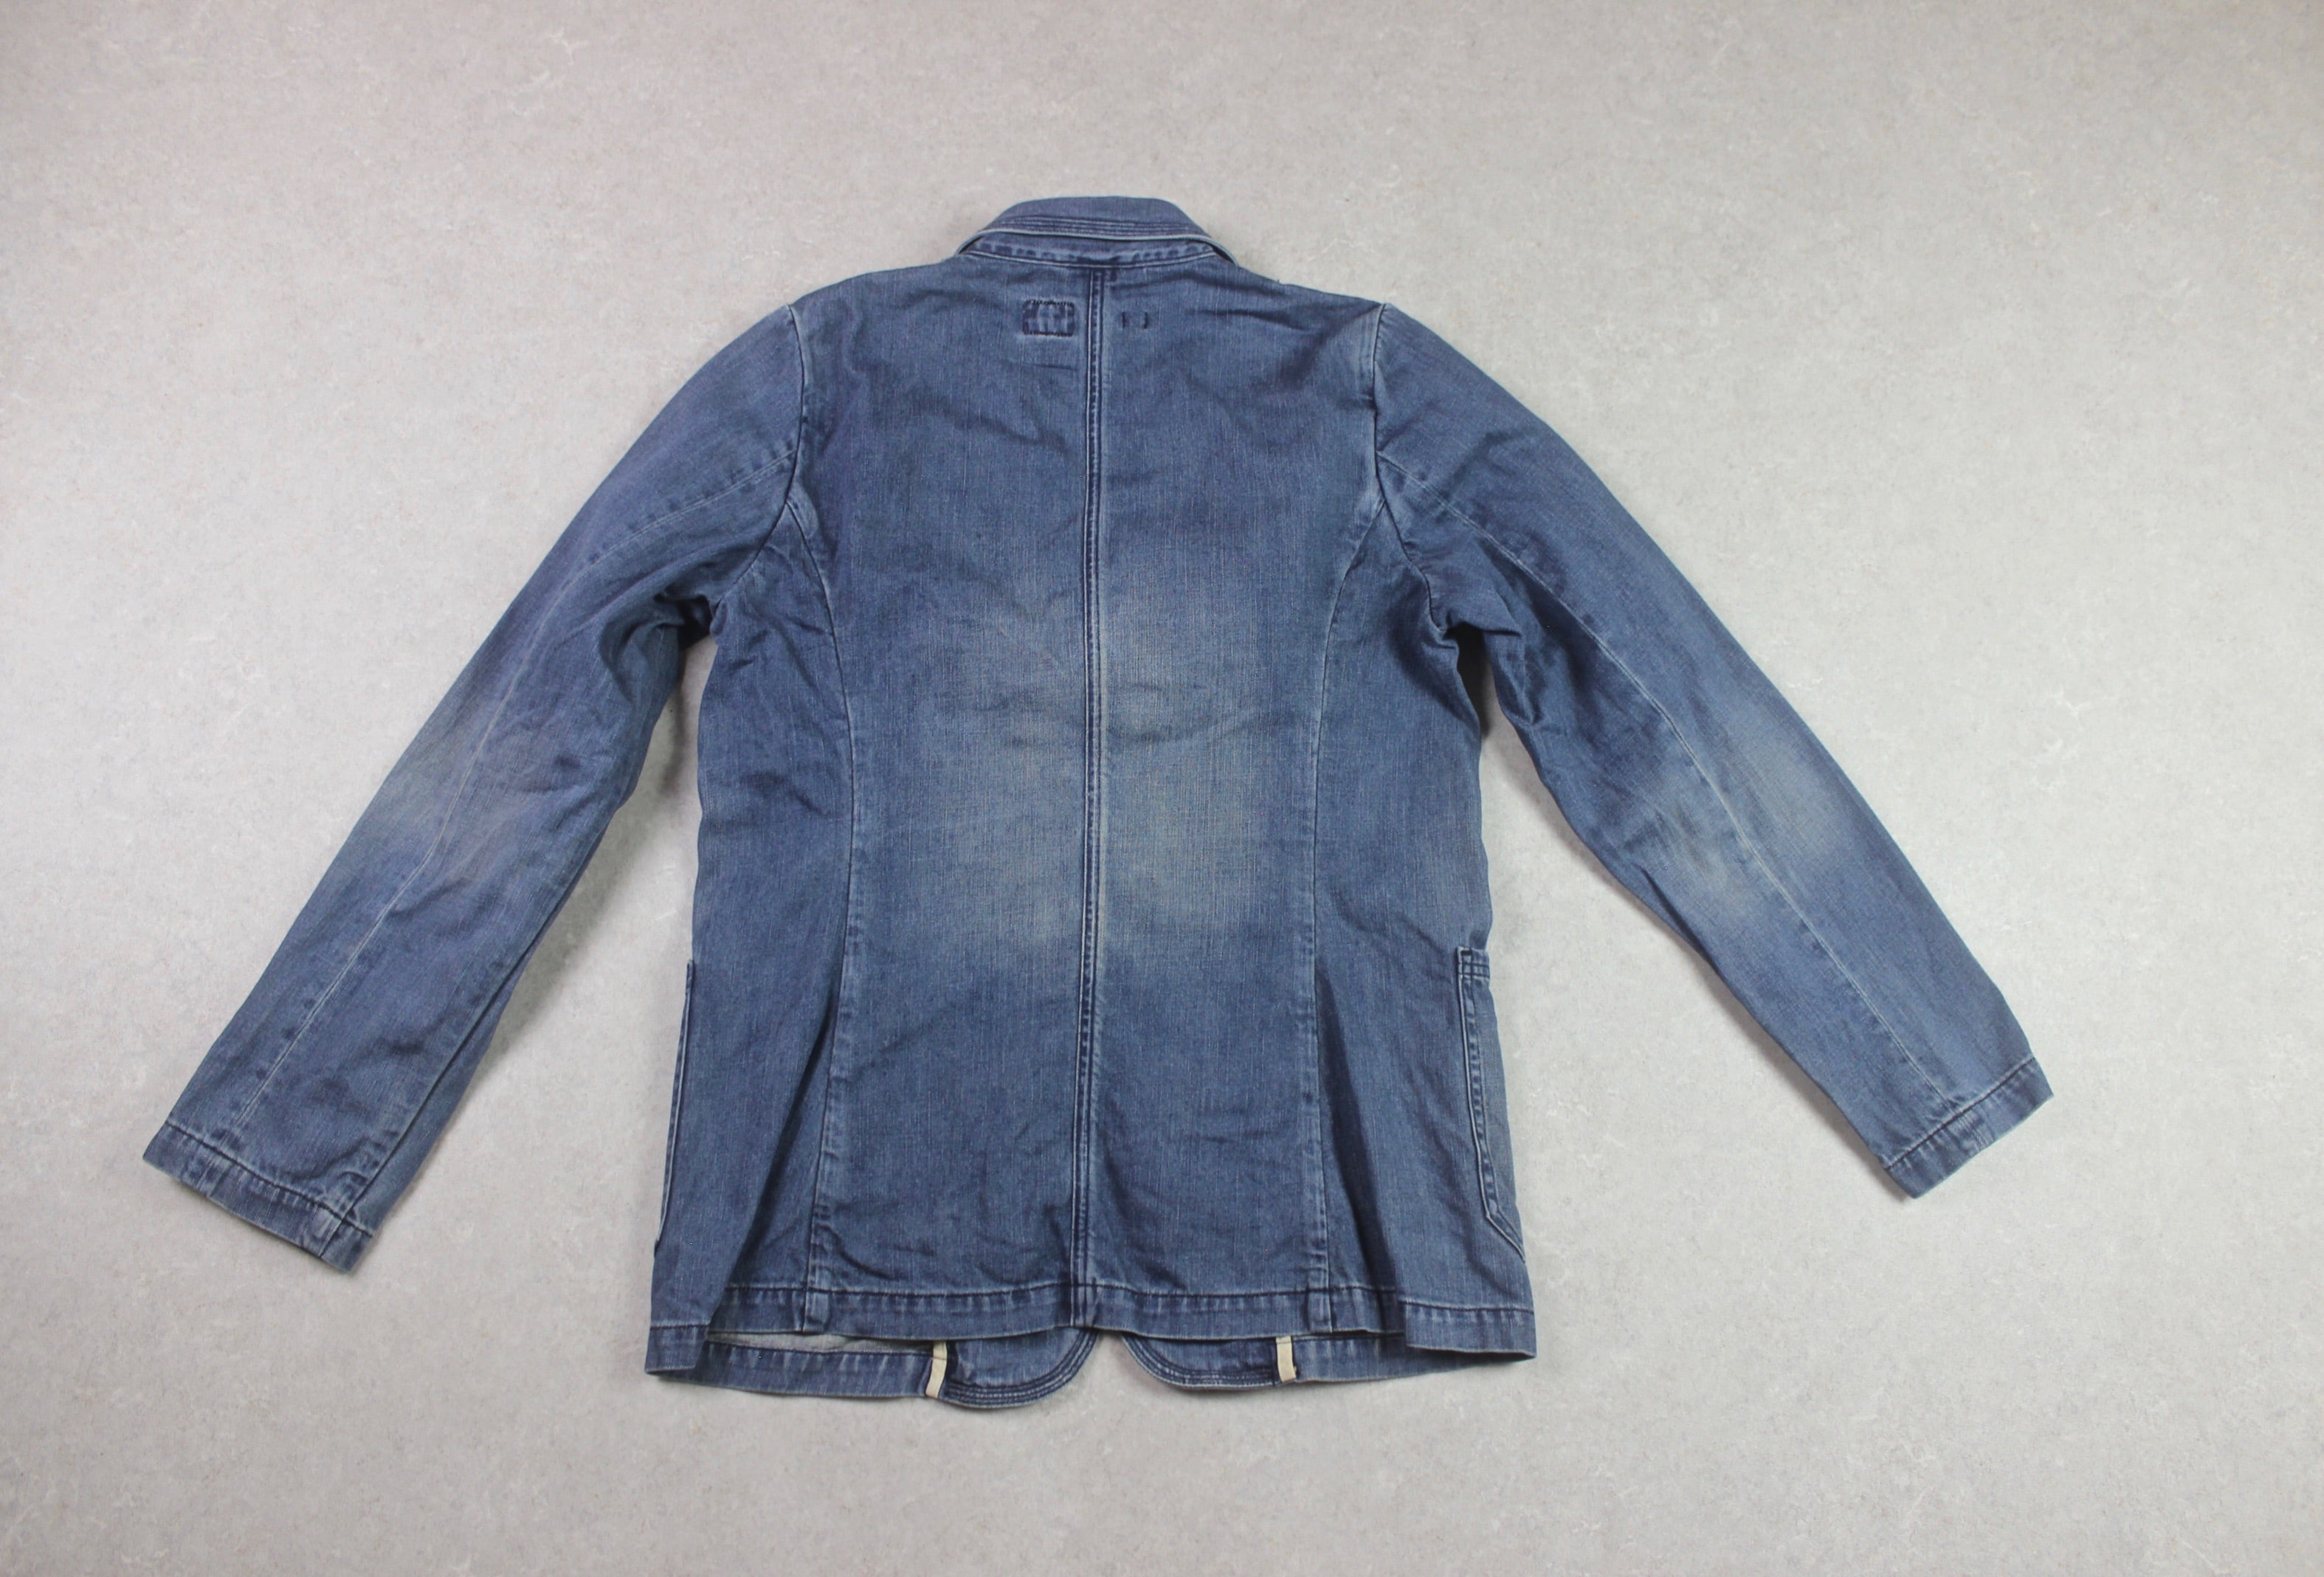 Garbstore - Denim Jacket - Blue - Medium